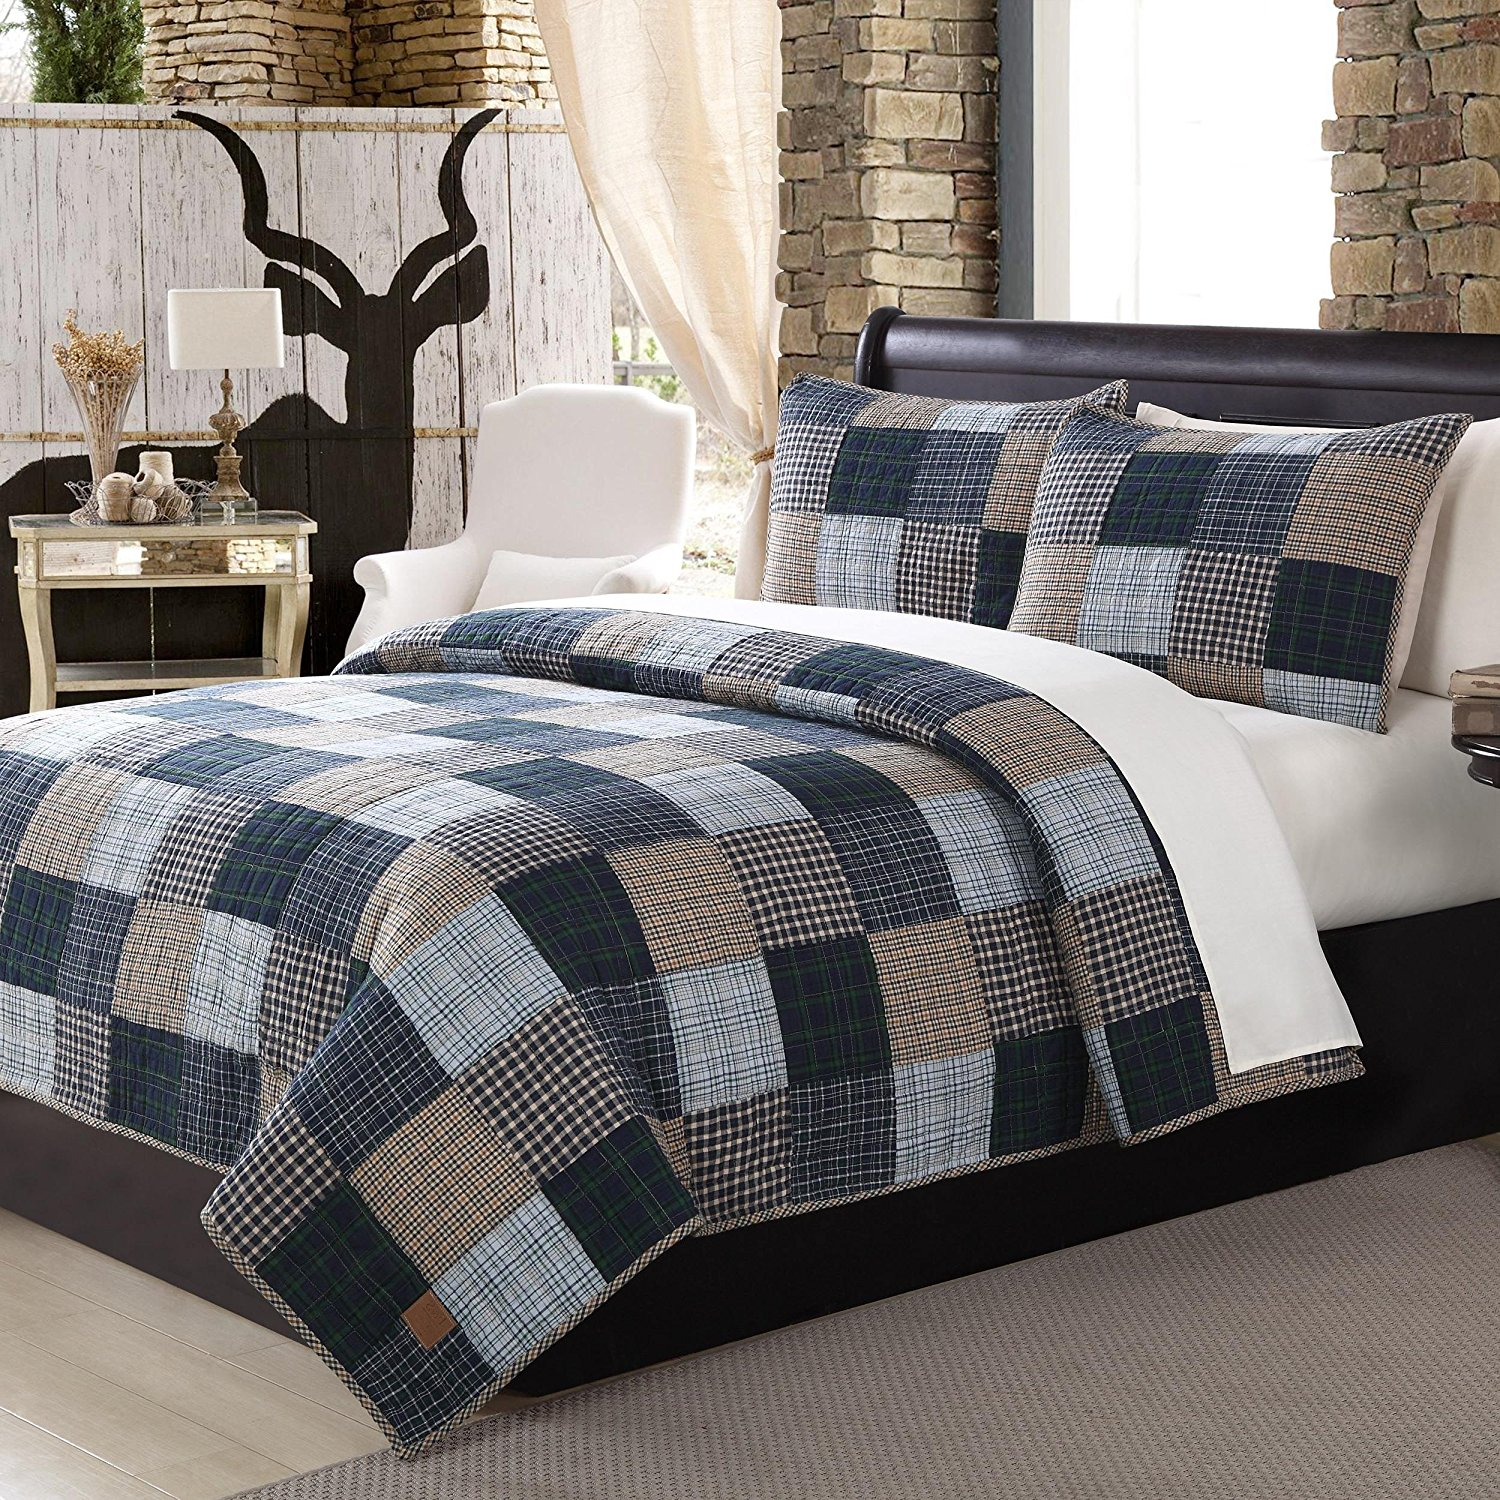 OTS 3 Piece Blue Patchwork King Size Quilt Set, Rustic Square White Pin Stripes Bedding, Gray Black Tartan Checkered Stripe Patch Work, Log Cabin Cottage Grey, Cotton, Polyester